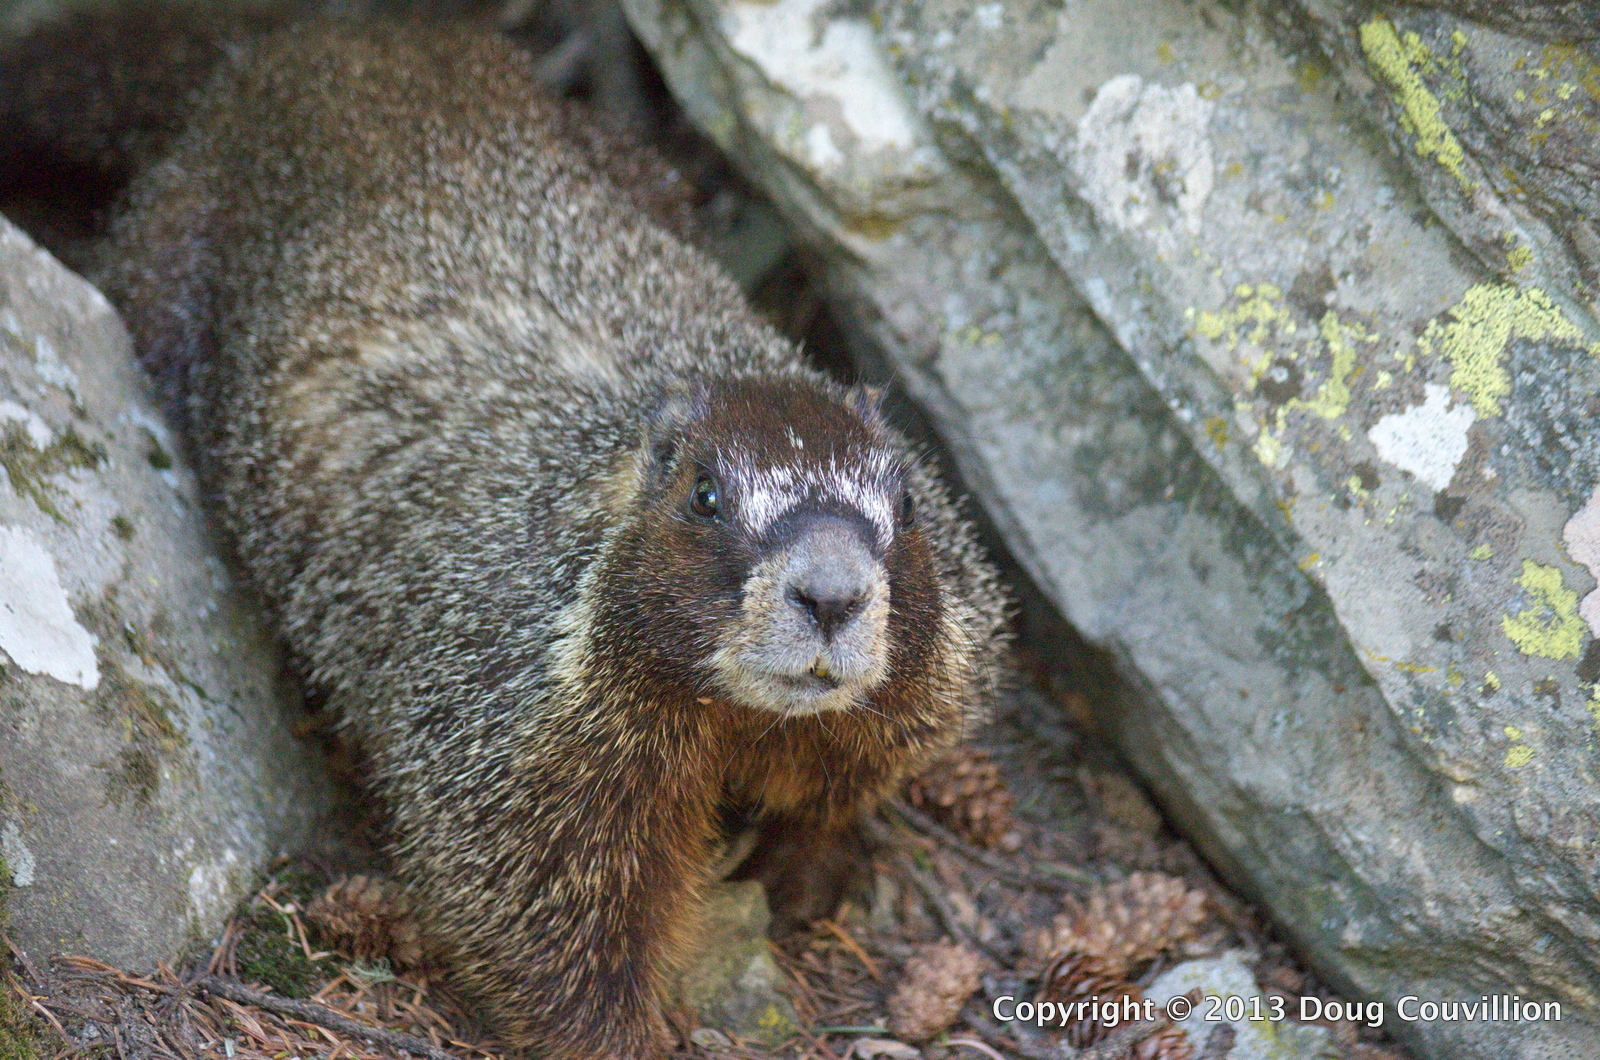 photograph of a yellow-bellied marmot